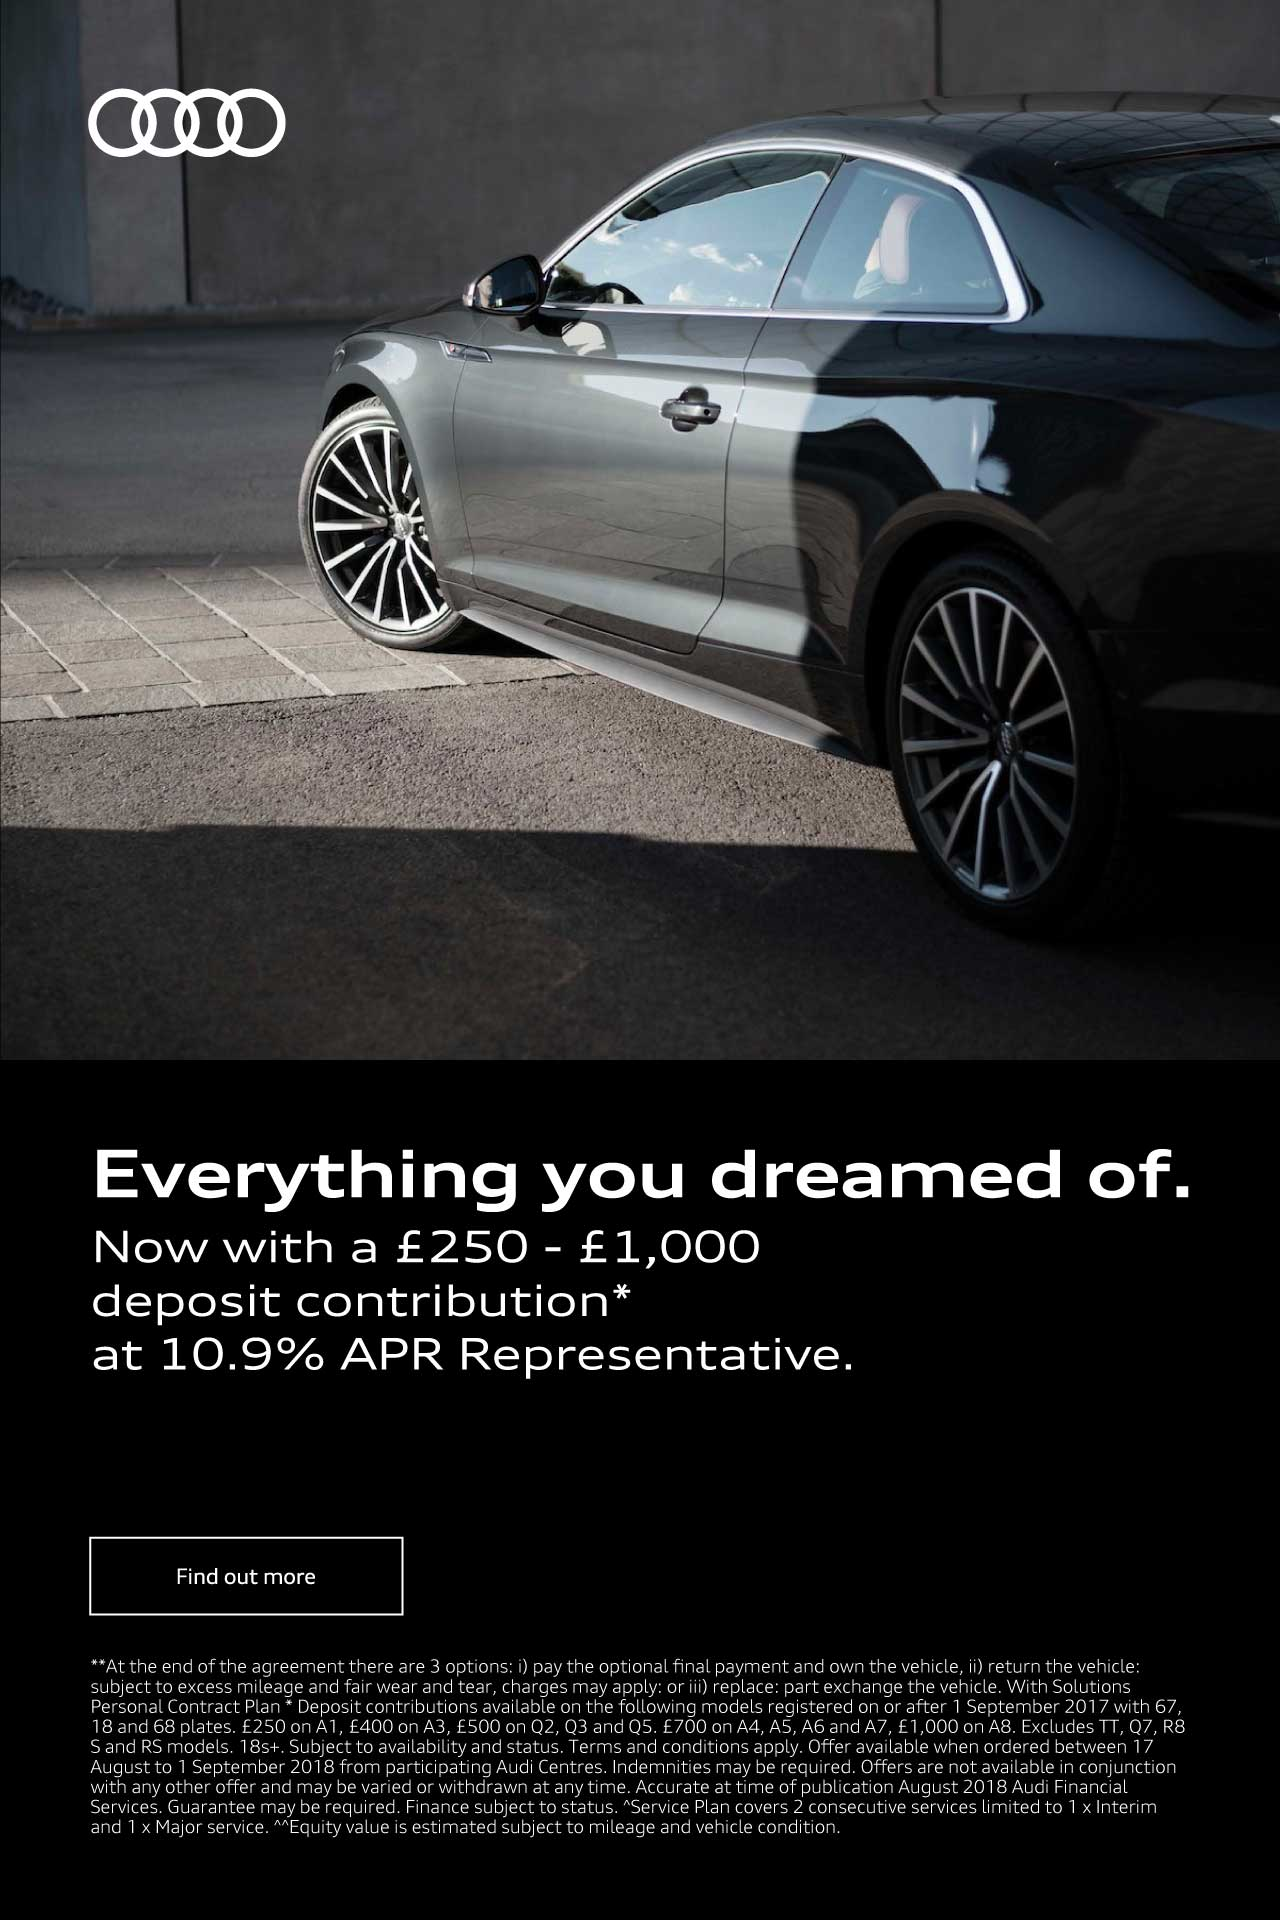 Audi Everything you dreamed of 280818